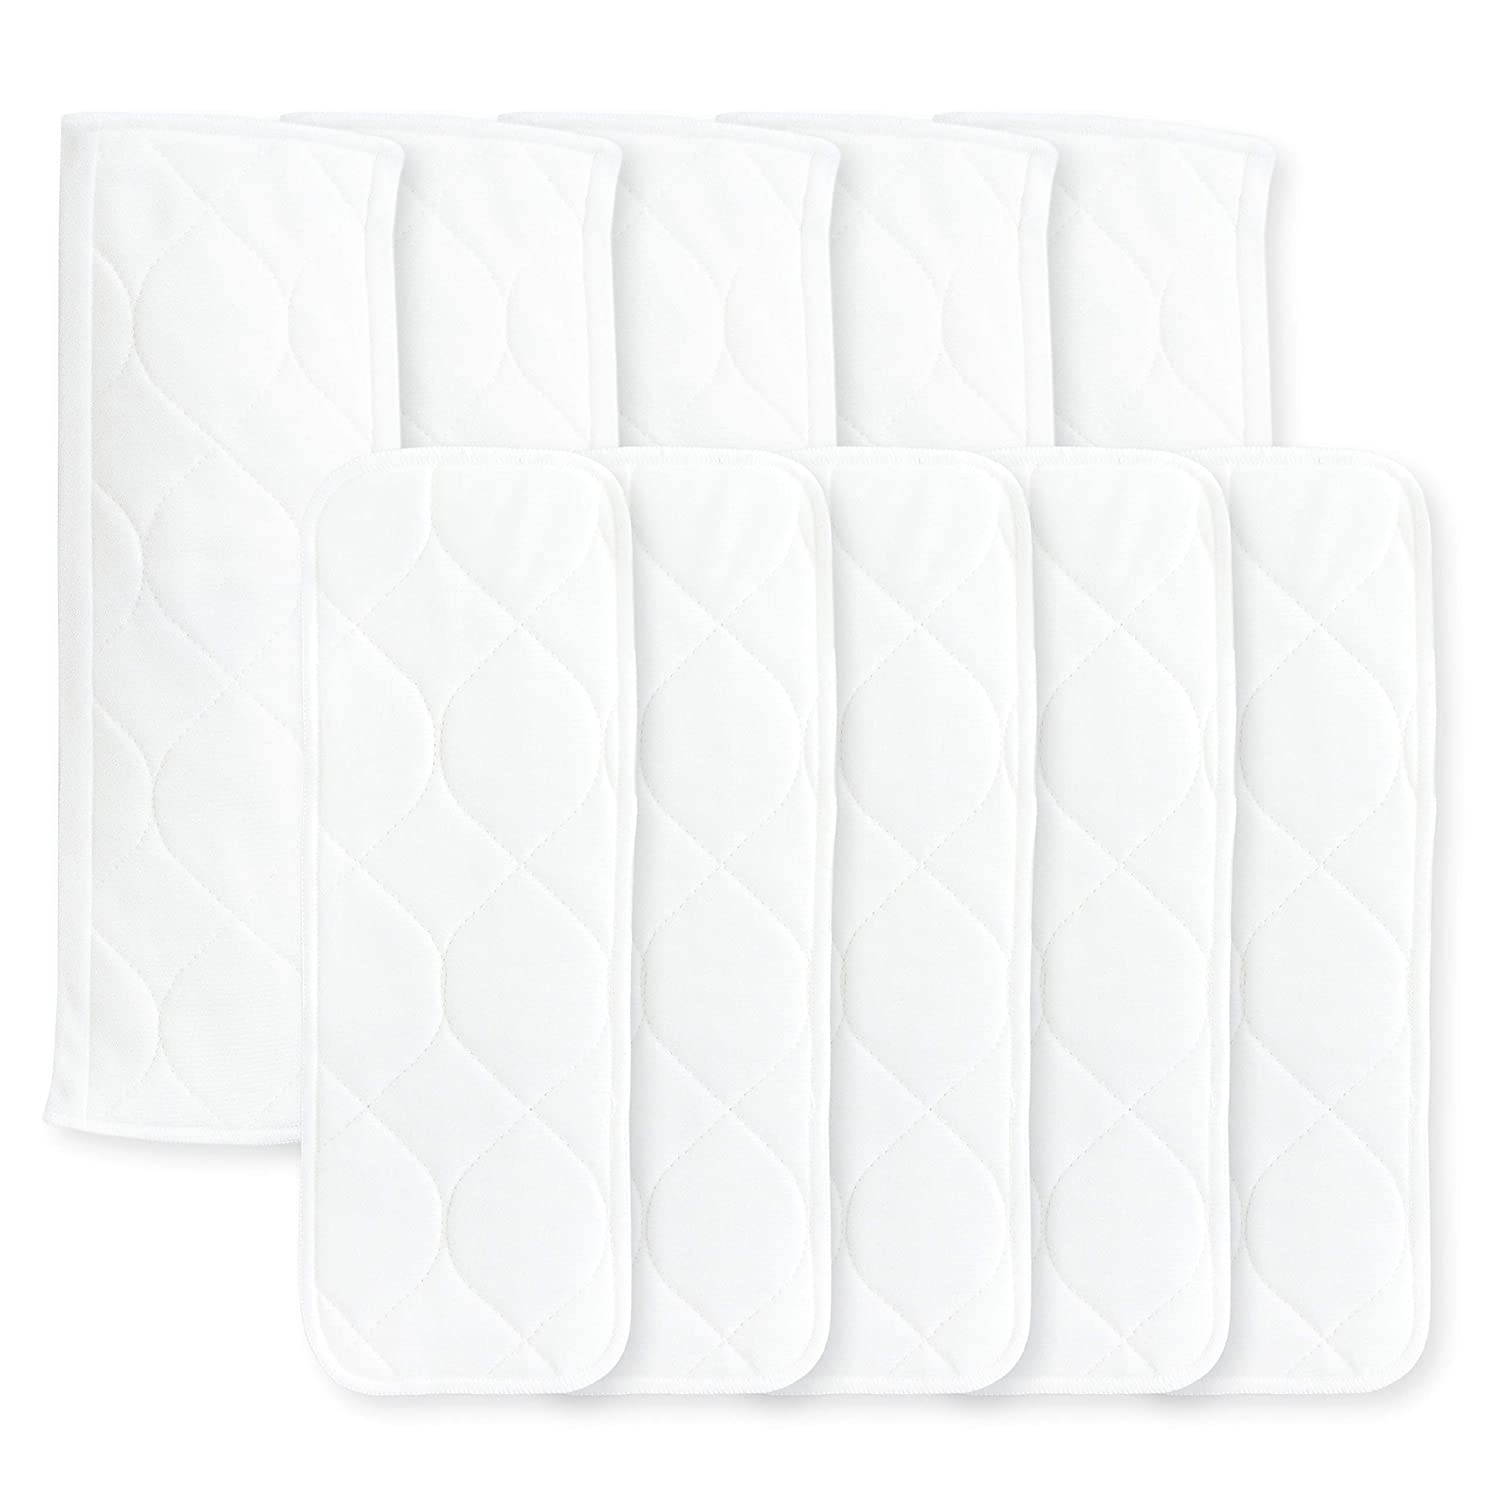 5 Bi-fold Inserts and 5 Boosters Amazing Baby Reusable Inserts for SmartNappy Hybrid Diaper Cover Set of 10 Newborn 5-10 lbs Size 1